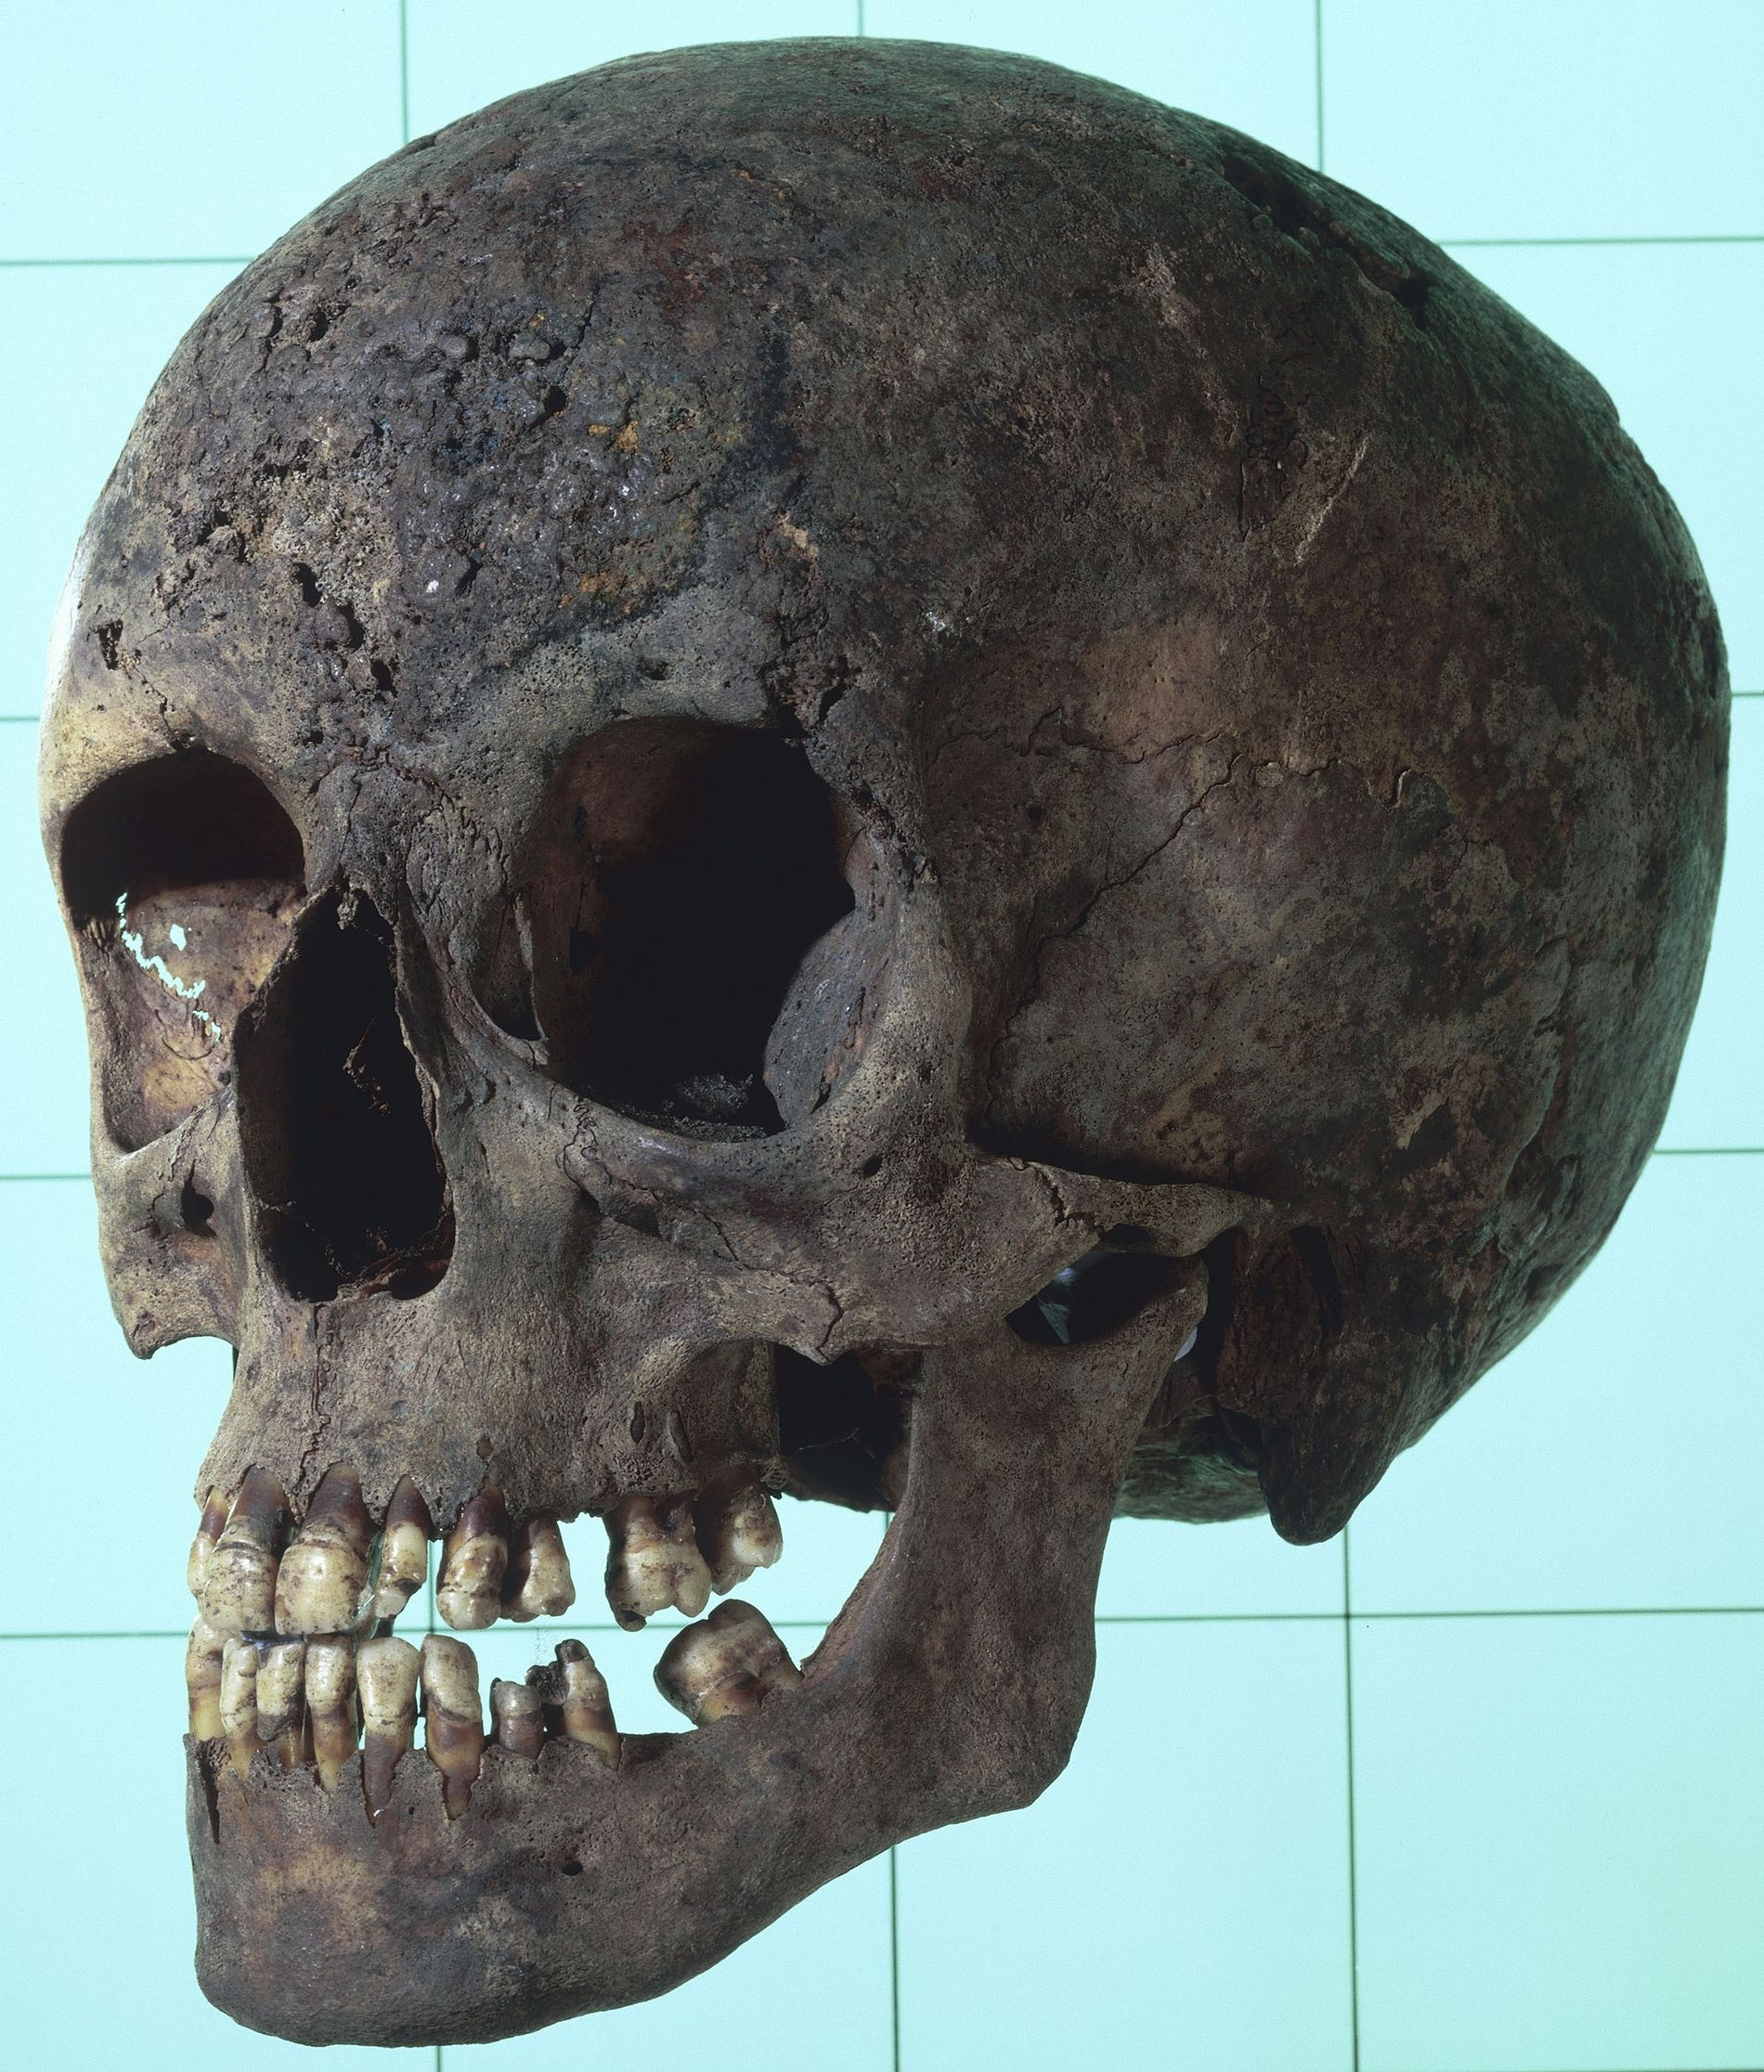 A female syphilitic skull with multiple erosive lesions. These lesions are key to identifying which individual's ...